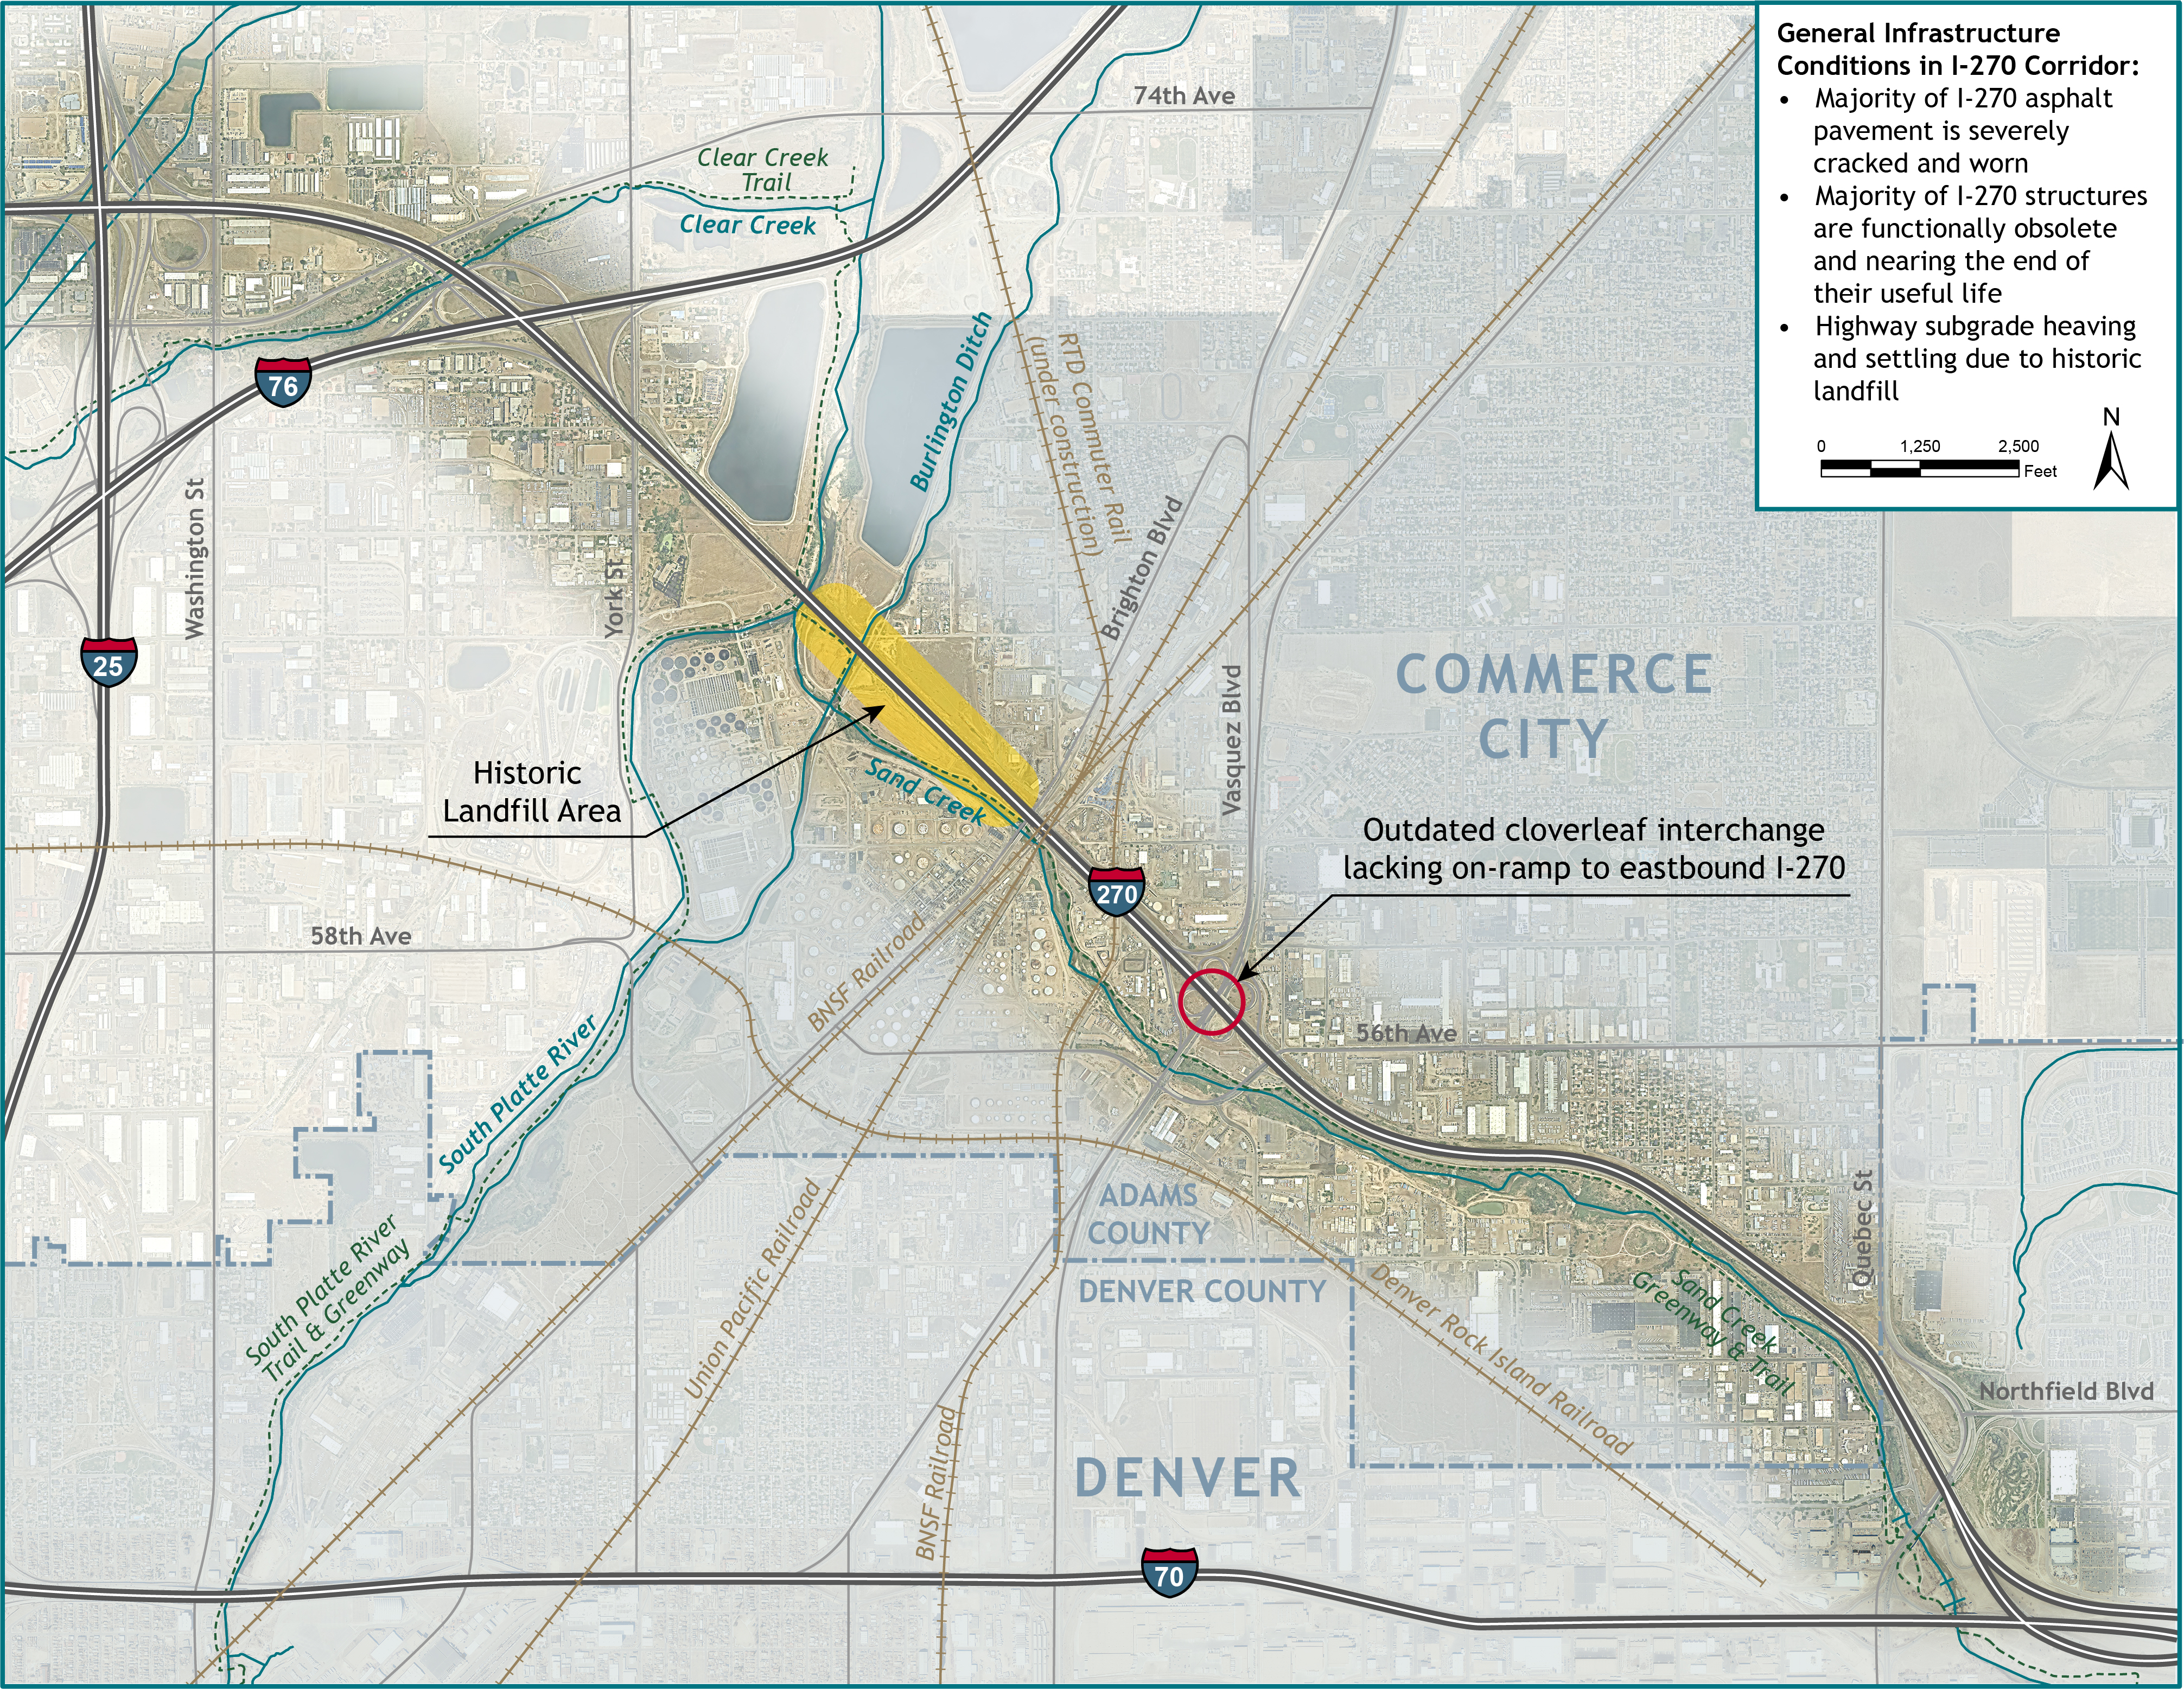 Existing Infrastructure Issues in the I-270 Corridor